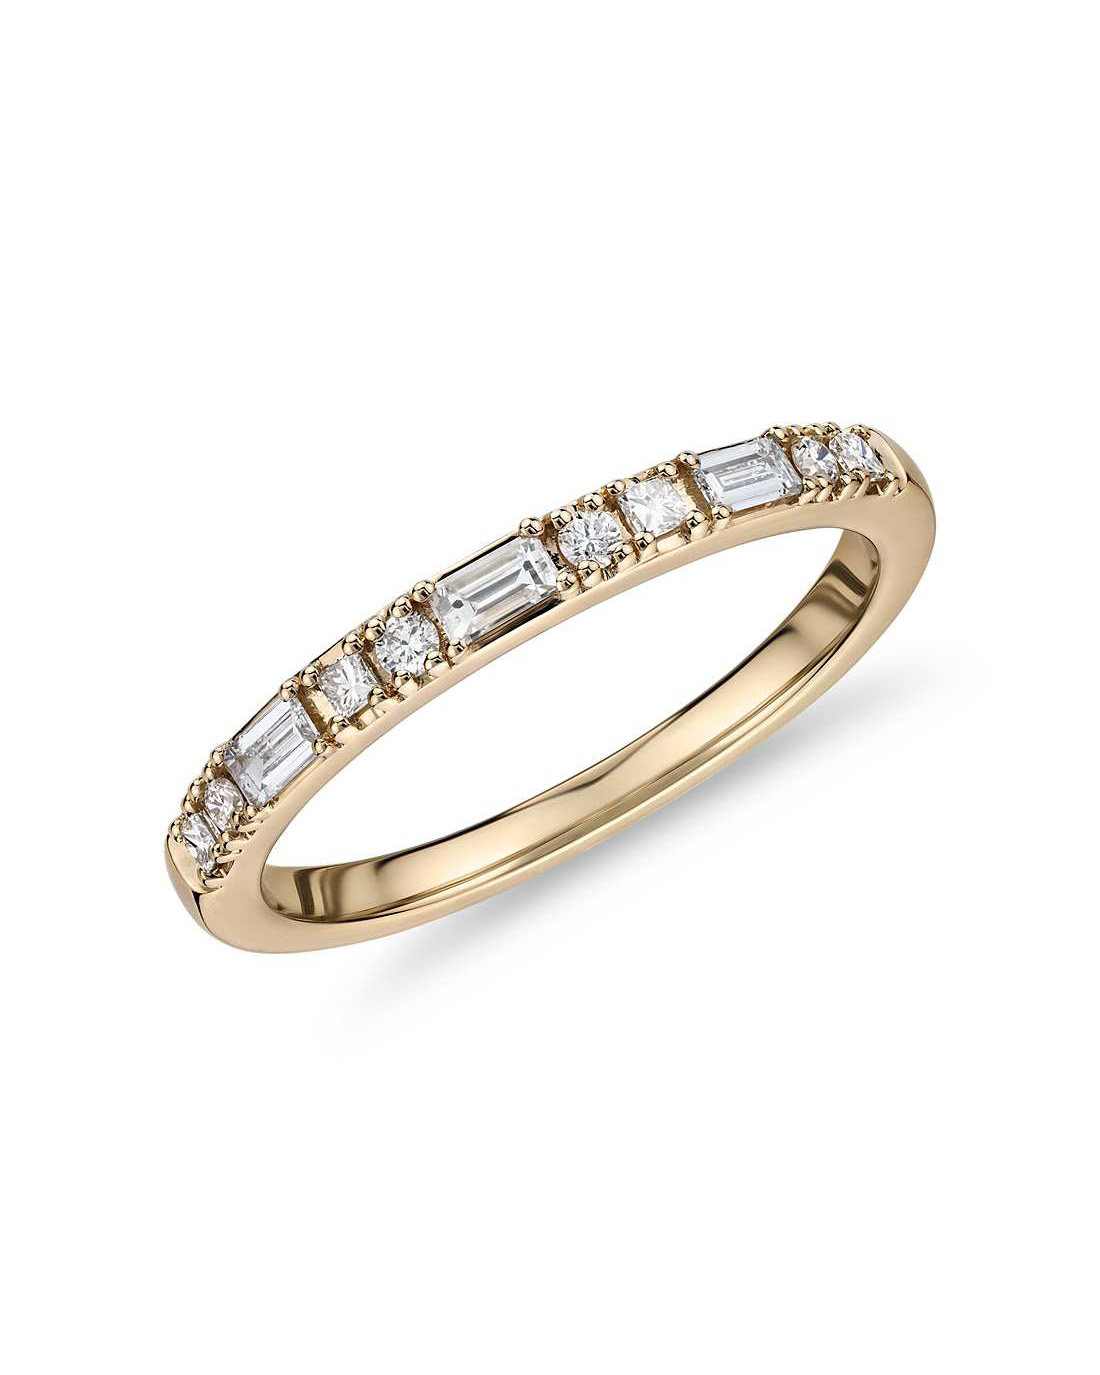 Round, baguette, and princess cut diamond ring set within 14k gold